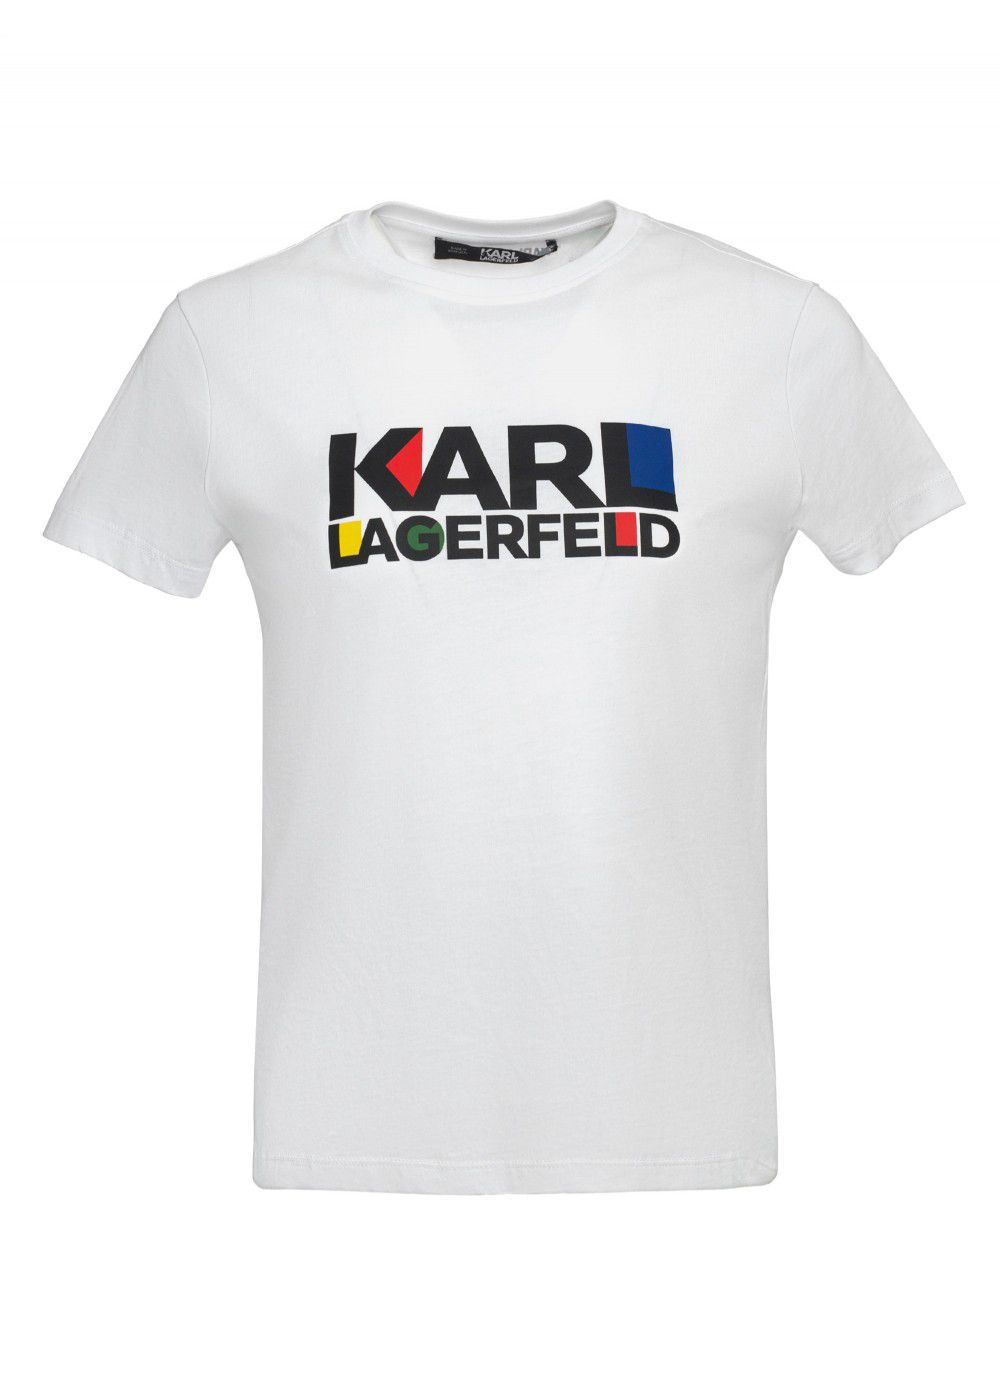 Karl Lagerfeld Ikonik T-Shirt in White